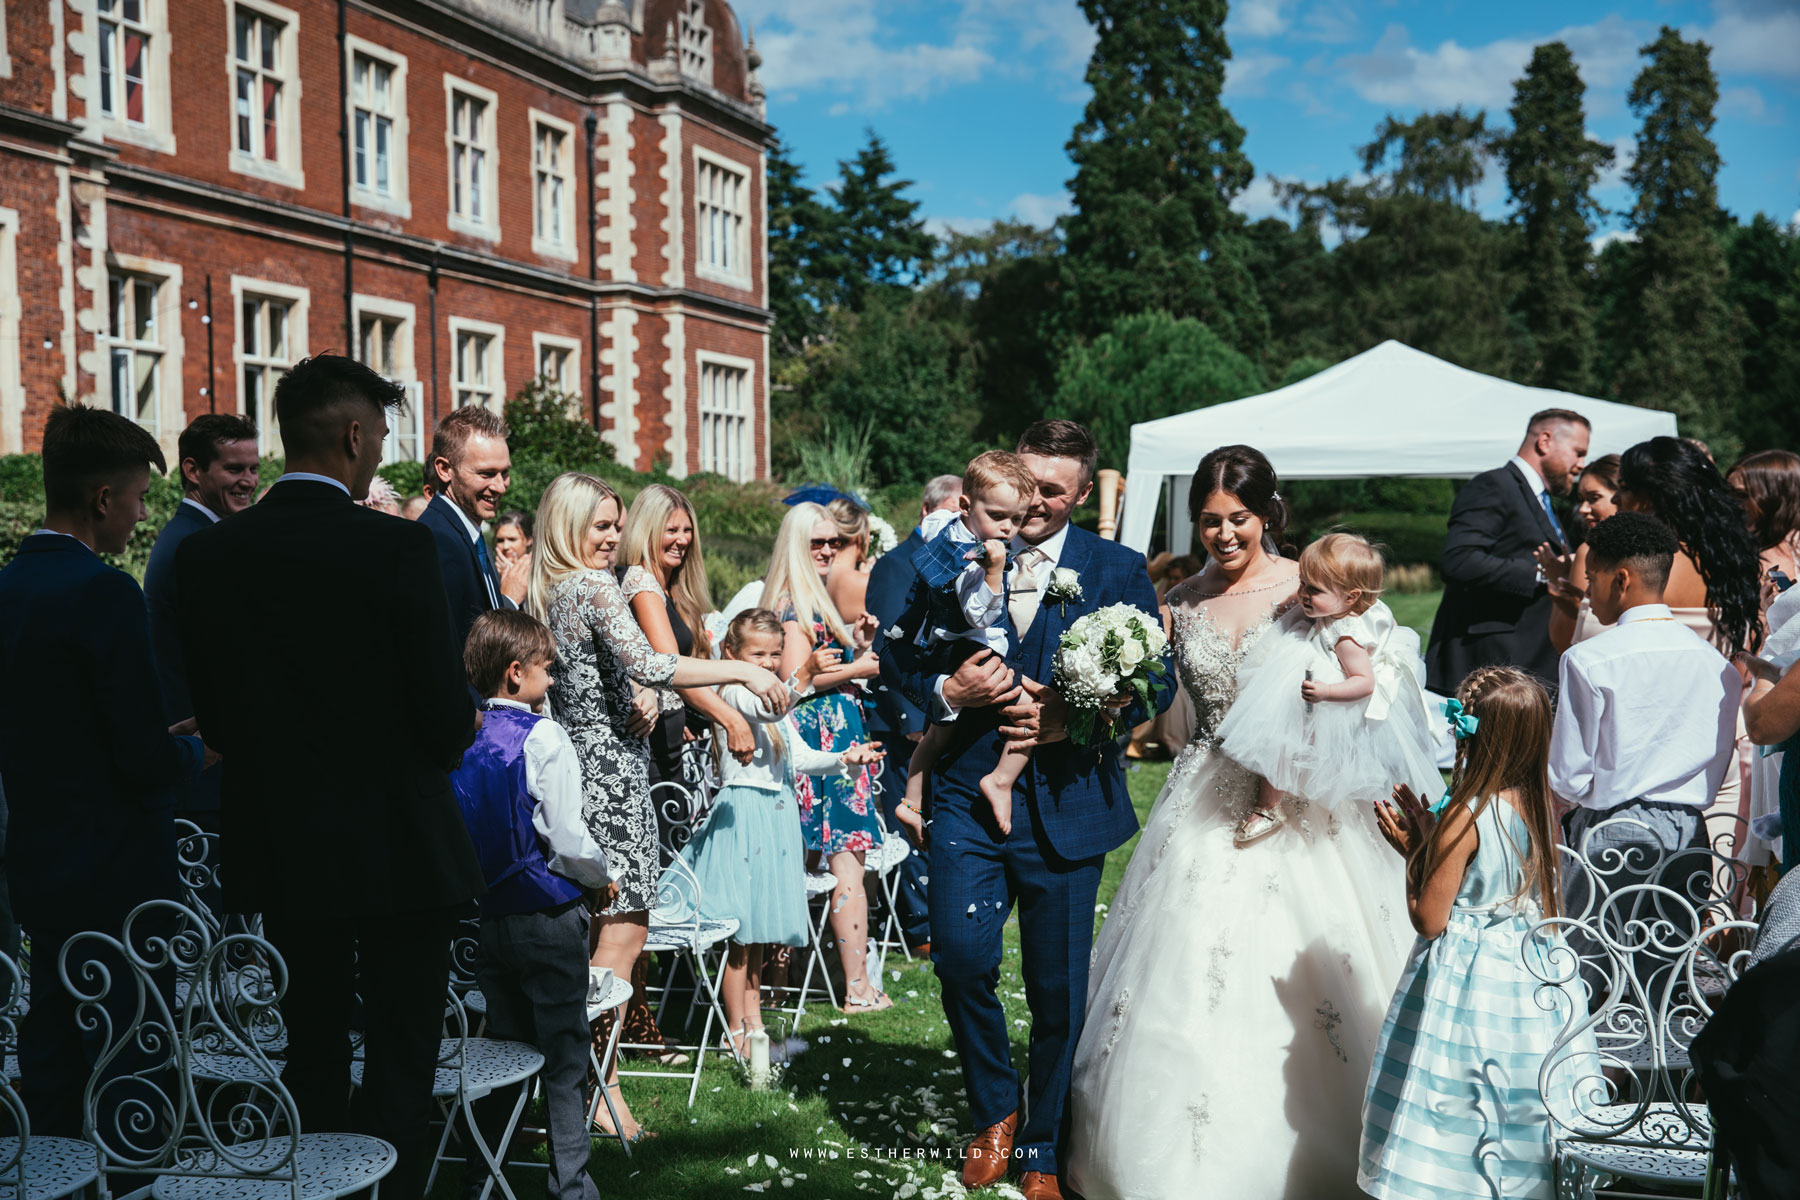 Lynford_Hall_Wedding_Thetford_Mundford_Esther_Wild_Photographer_IMG_1431.jpg